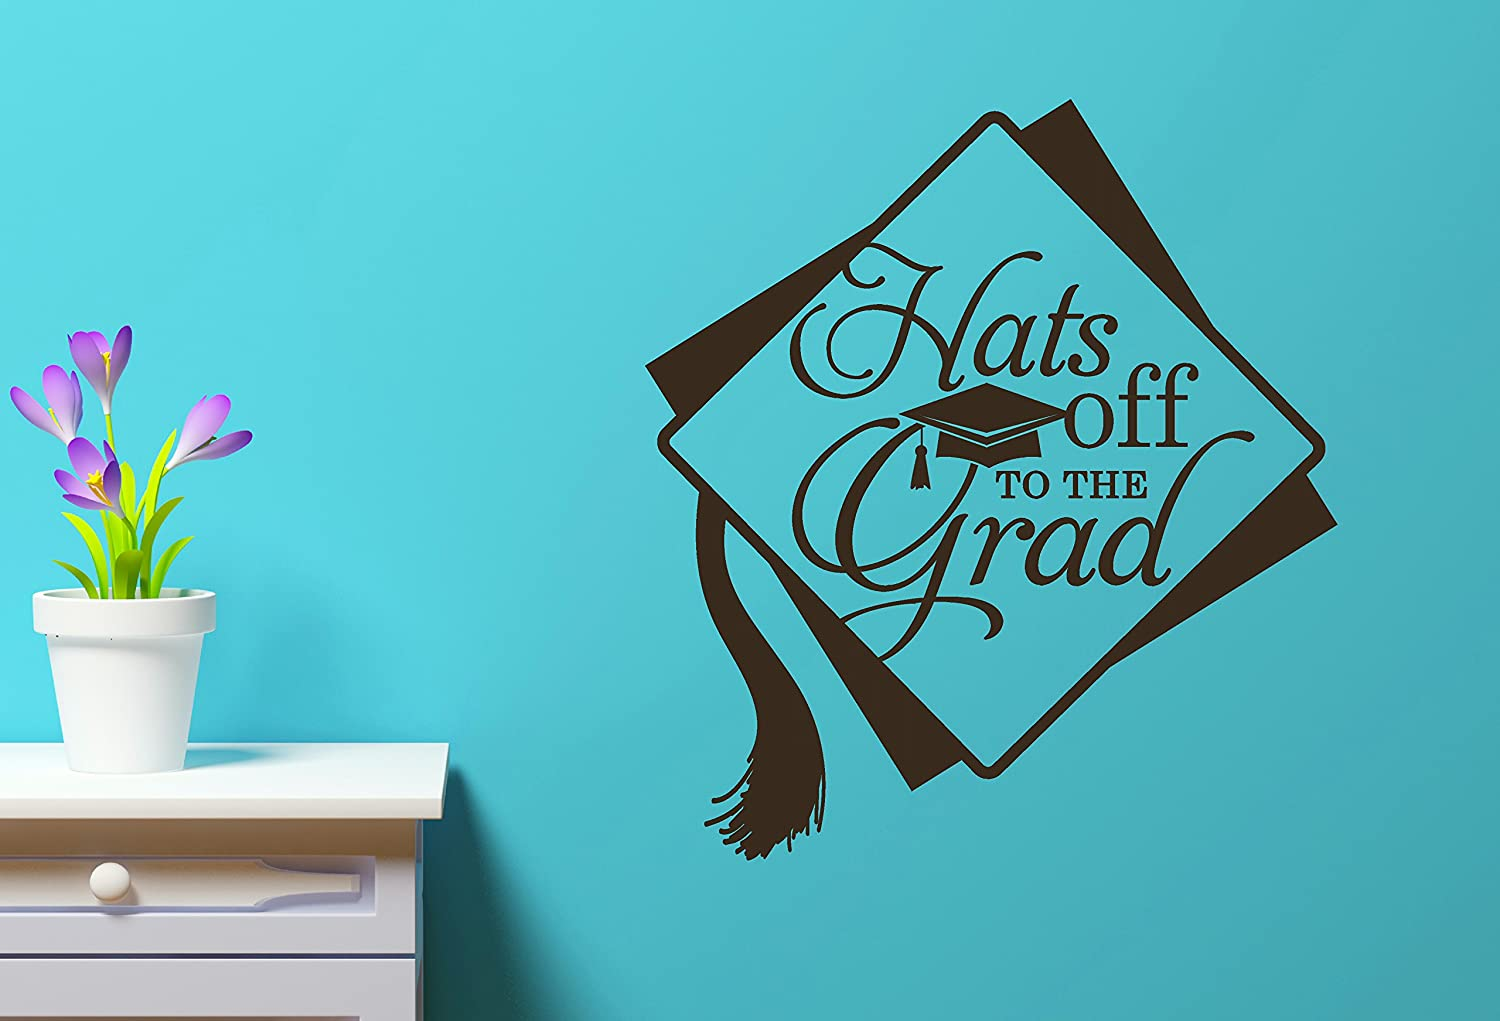 Chocolate Brown Wall Decor Plus More WDPM3458 Hats Off to the Grad with Cap /& Tassel Vinyl Wall Art Decal 12 x 12